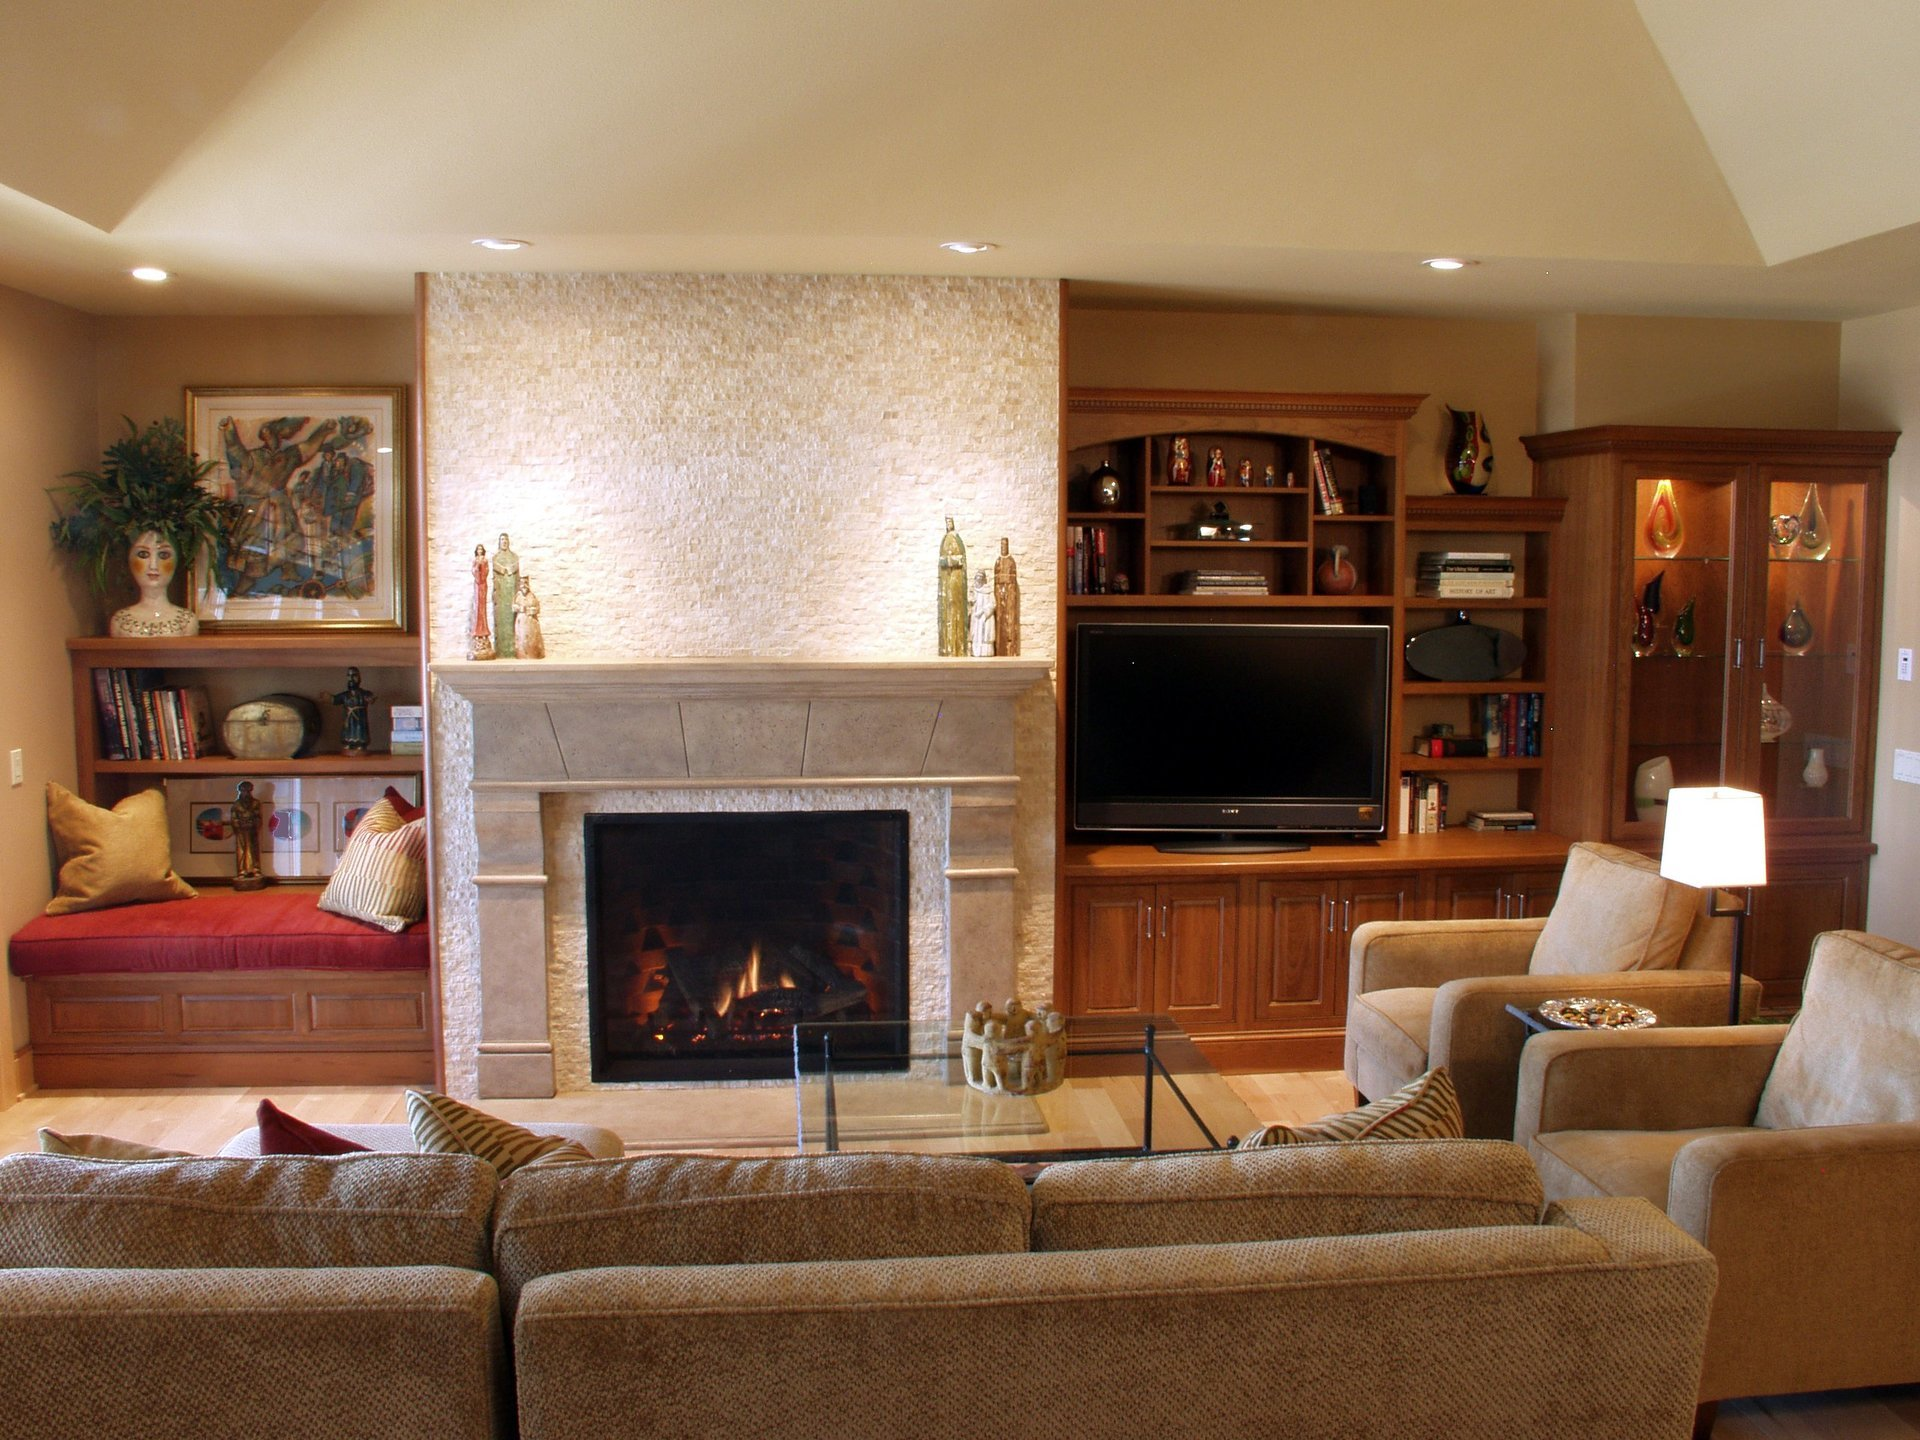 Featherstone Cabinetry & Design image 7